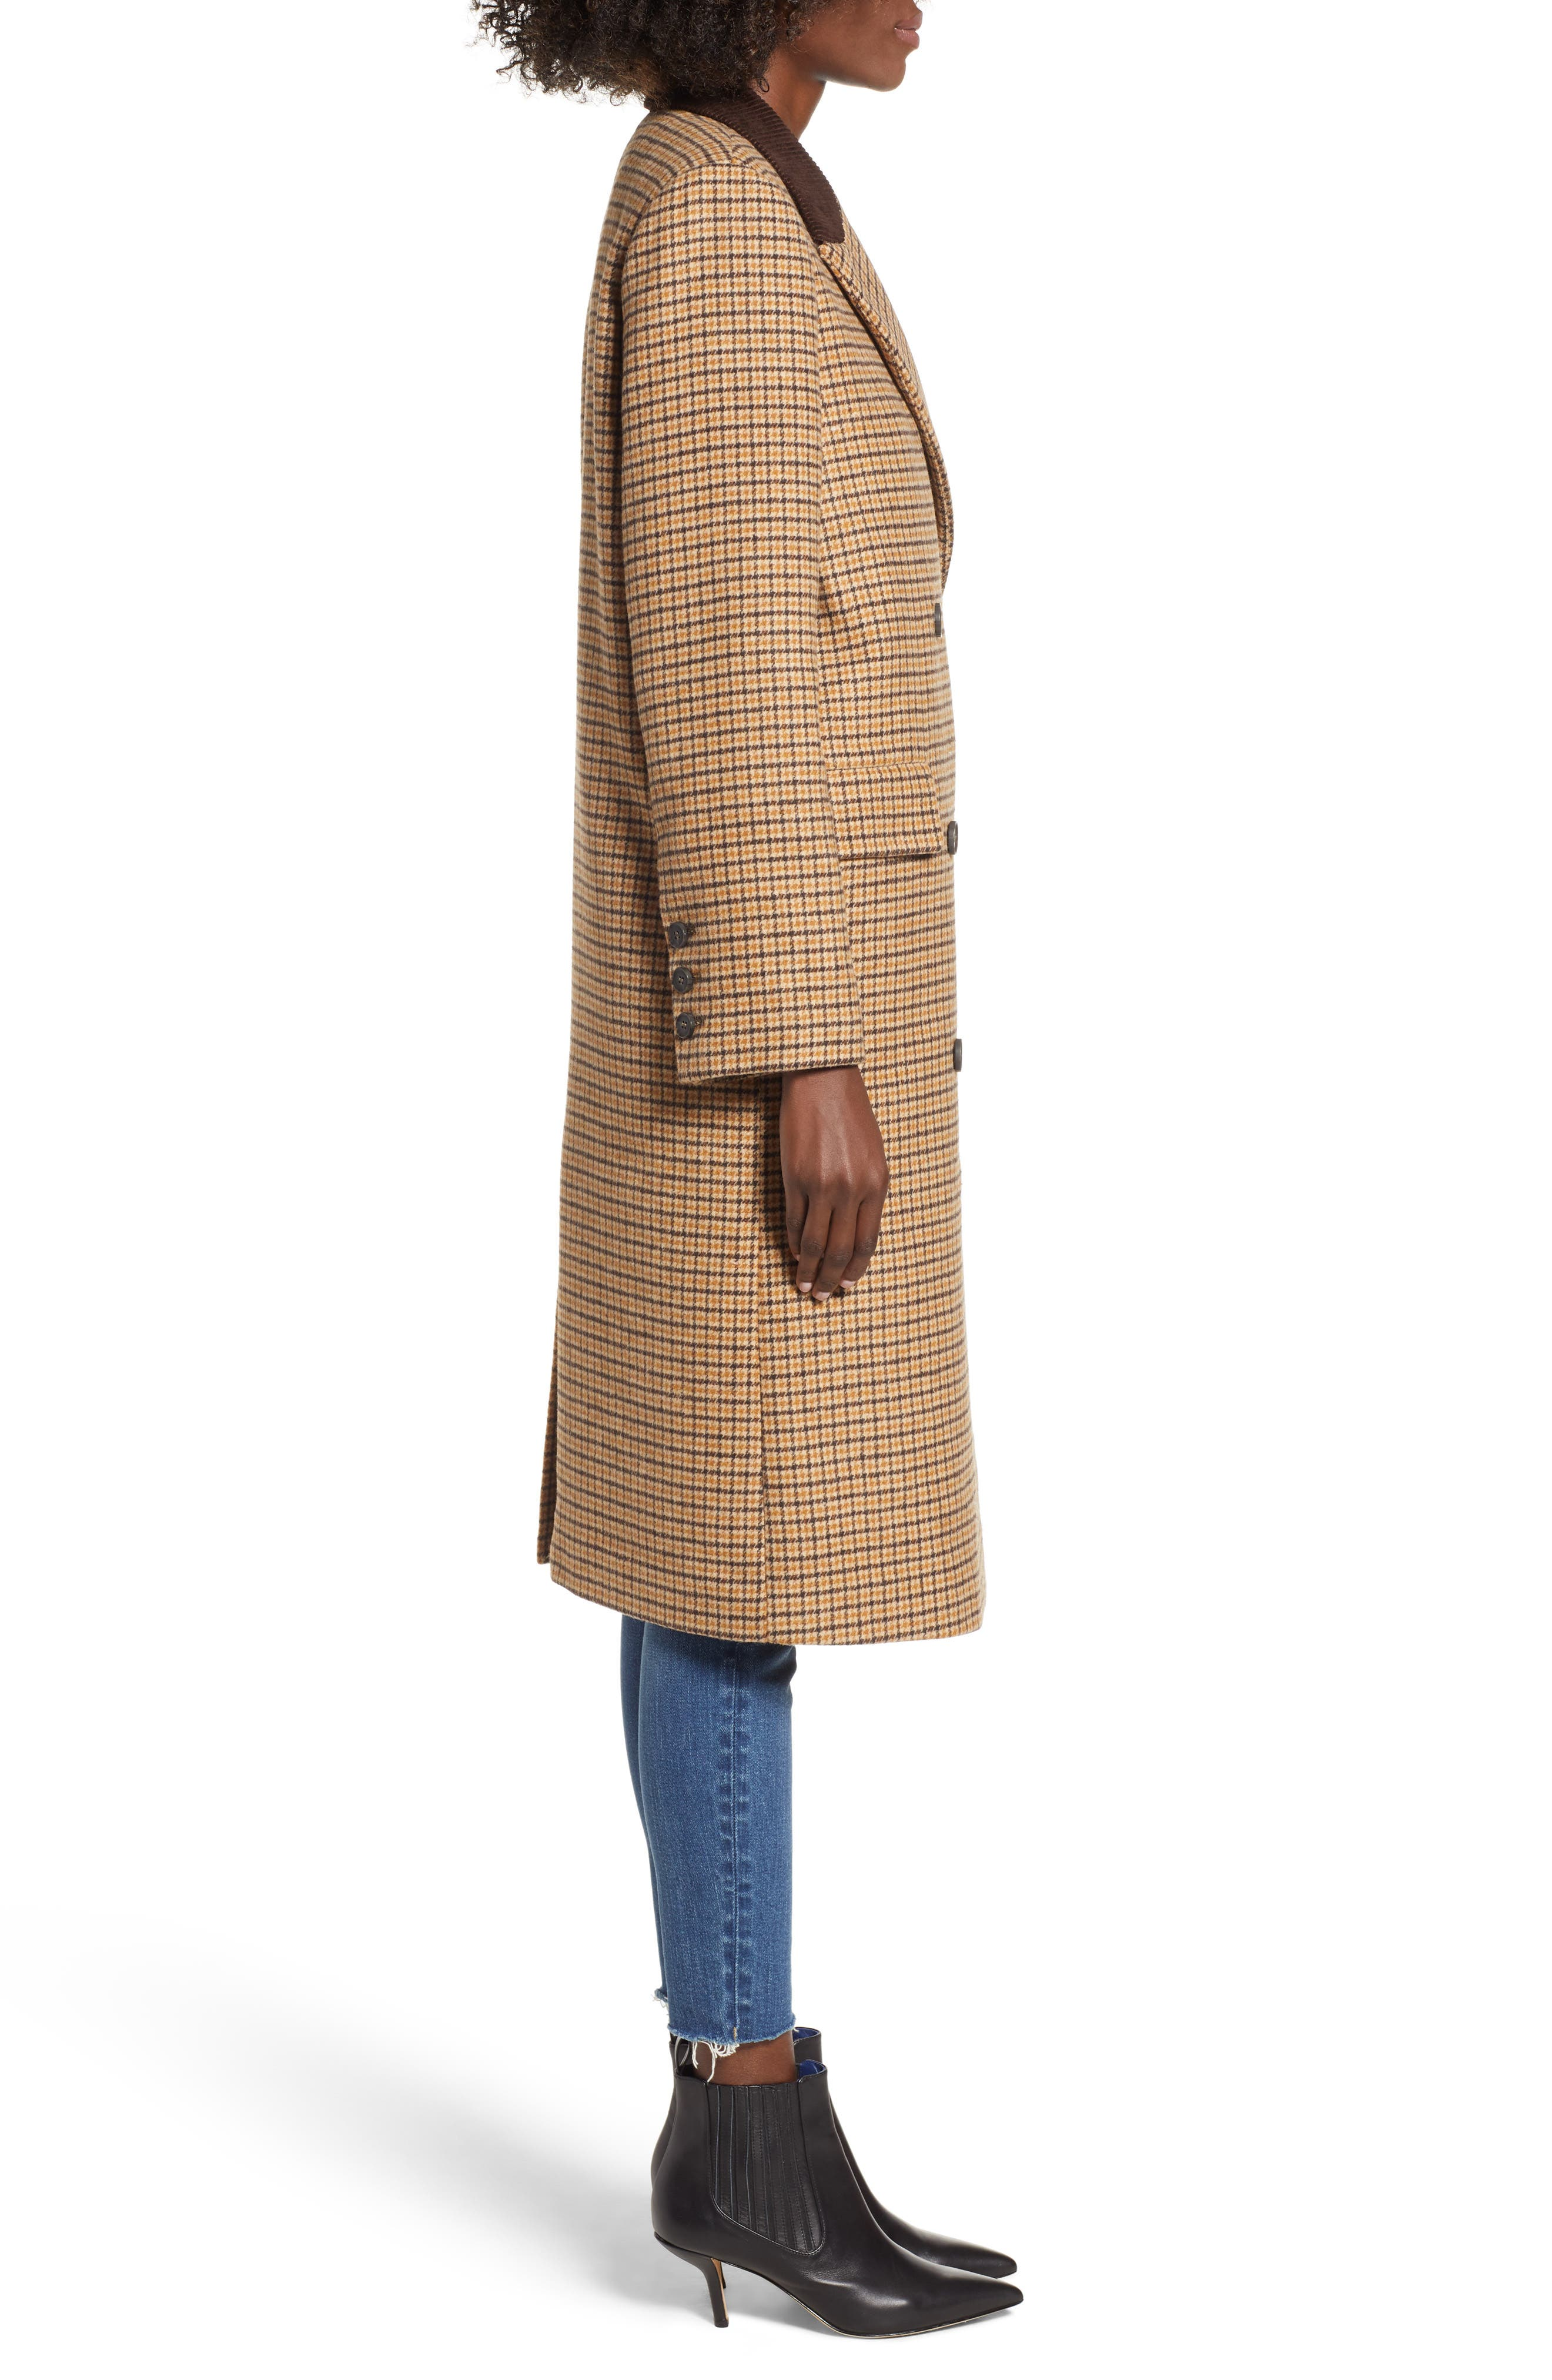 MOON RIVER,                             Houndstooth Double Breasted COat,                             Alternate thumbnail 3, color,                             BROWN PLAID